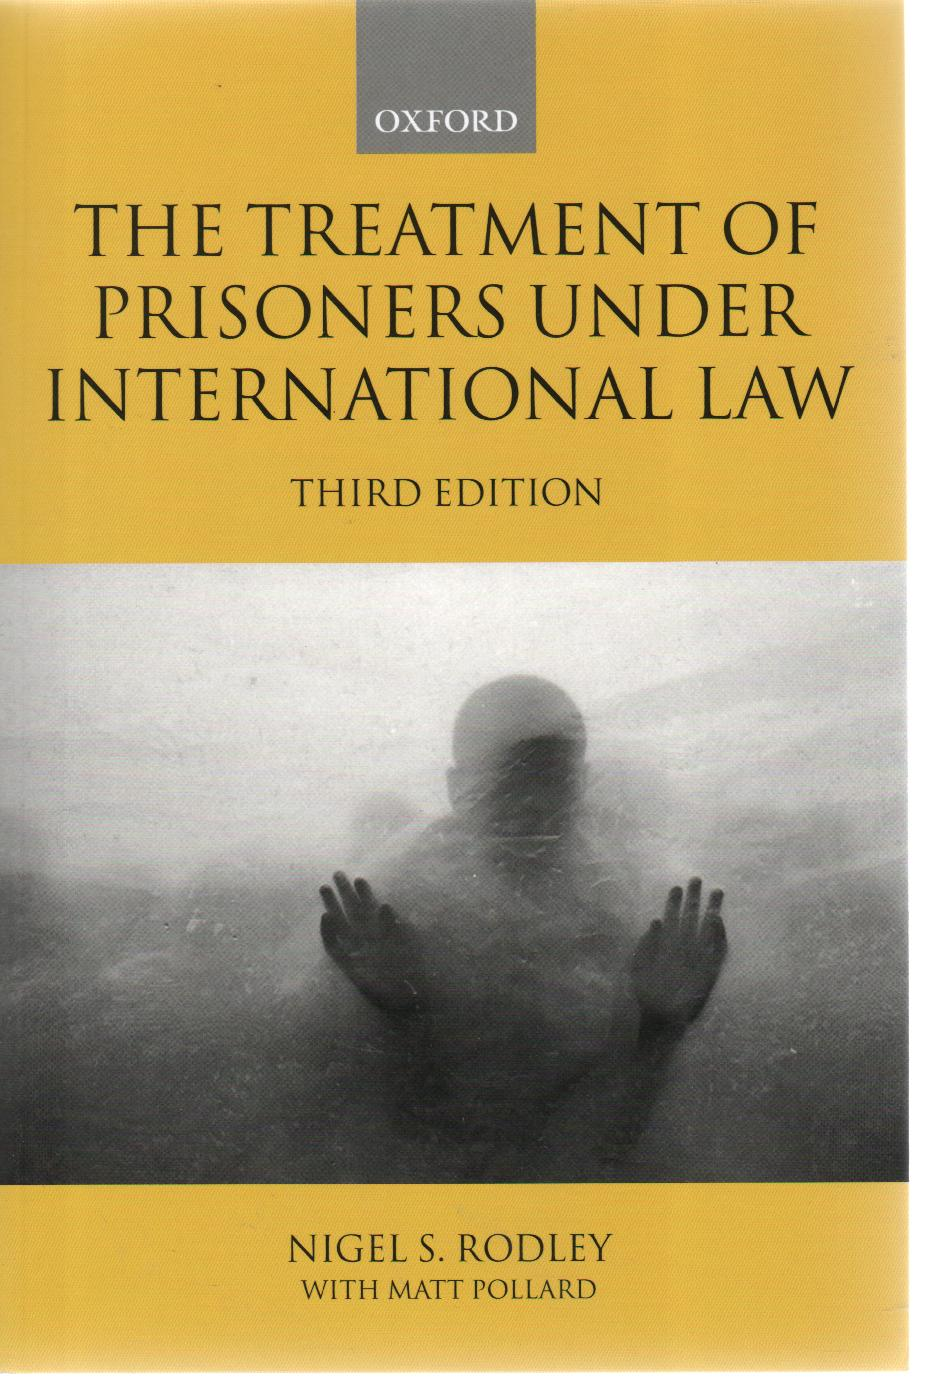 The Treatment of Prisoners under International Law, 3ed